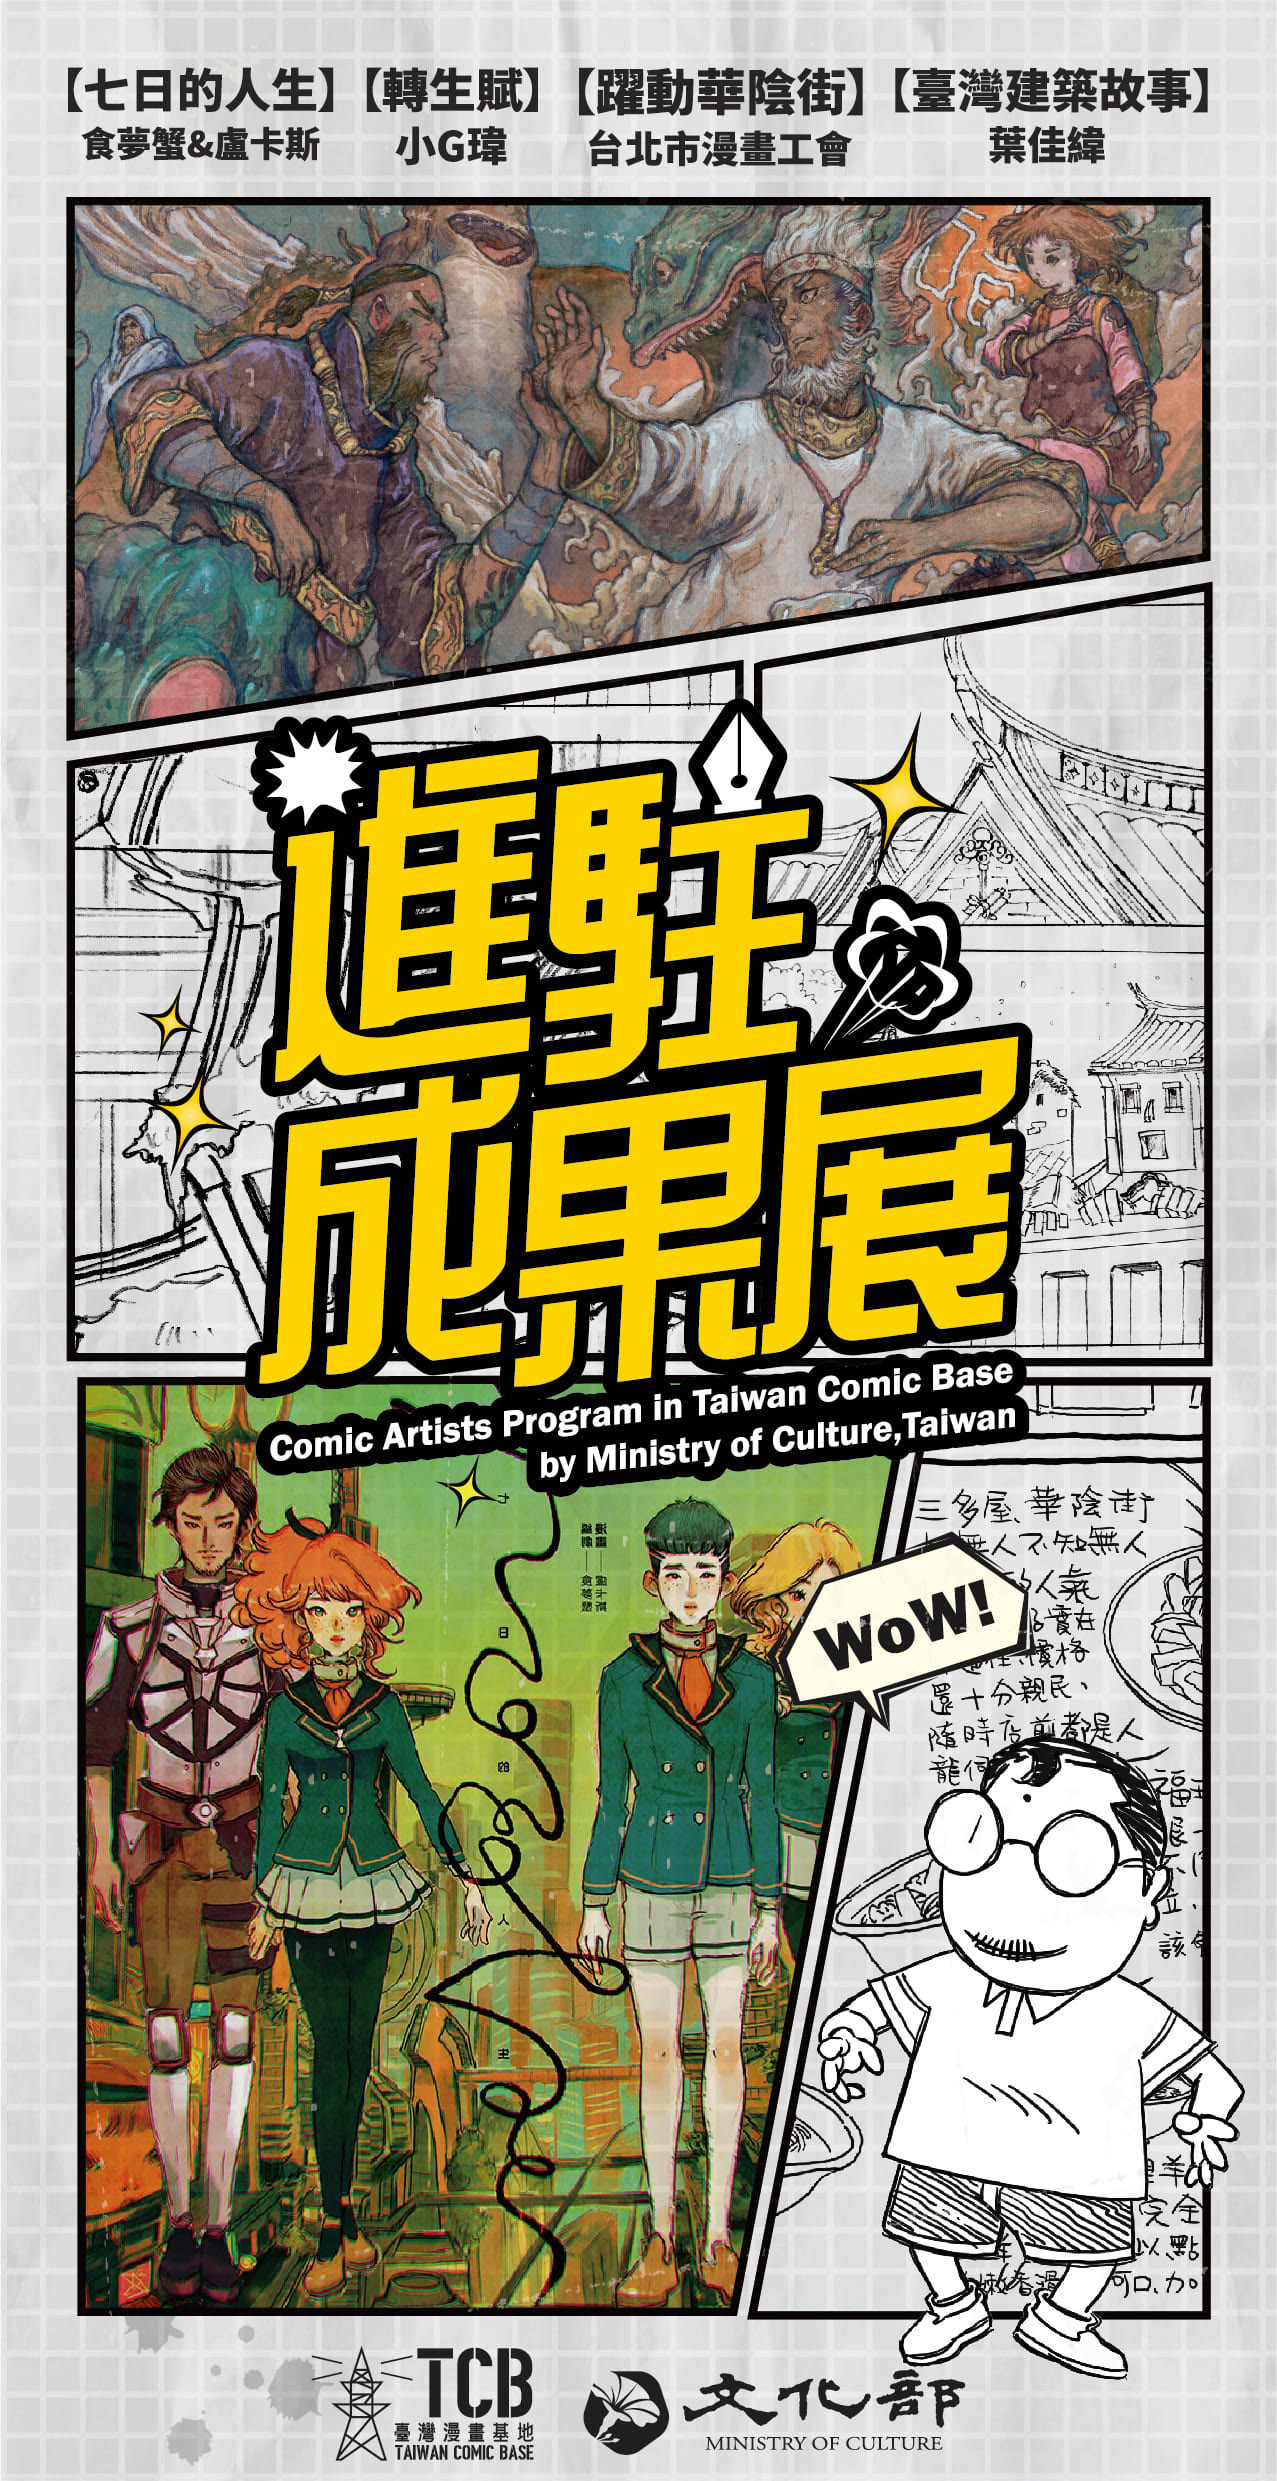 'Comic Artists Program in Taiwan Comic Base'